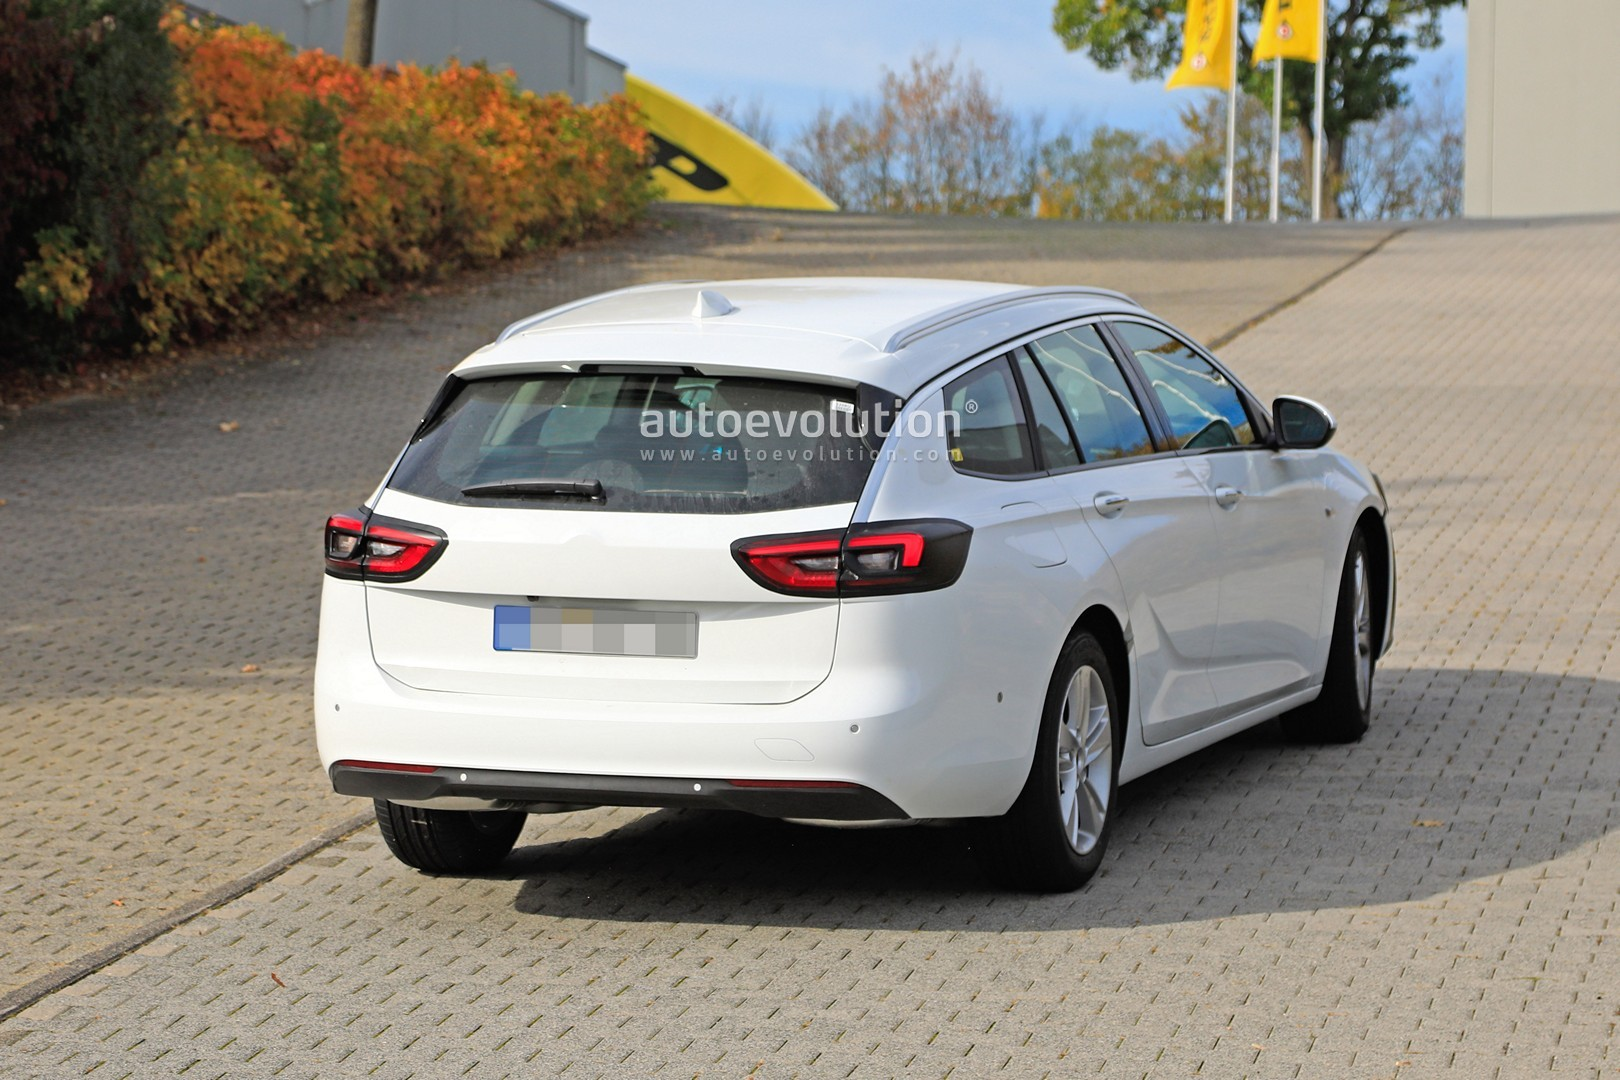 2020 - [Opel] Insignia Grand Sport Restylée  2020-opel-insignia-facelift-makes-spyshots-debut-as-camouflaged-wagon_8